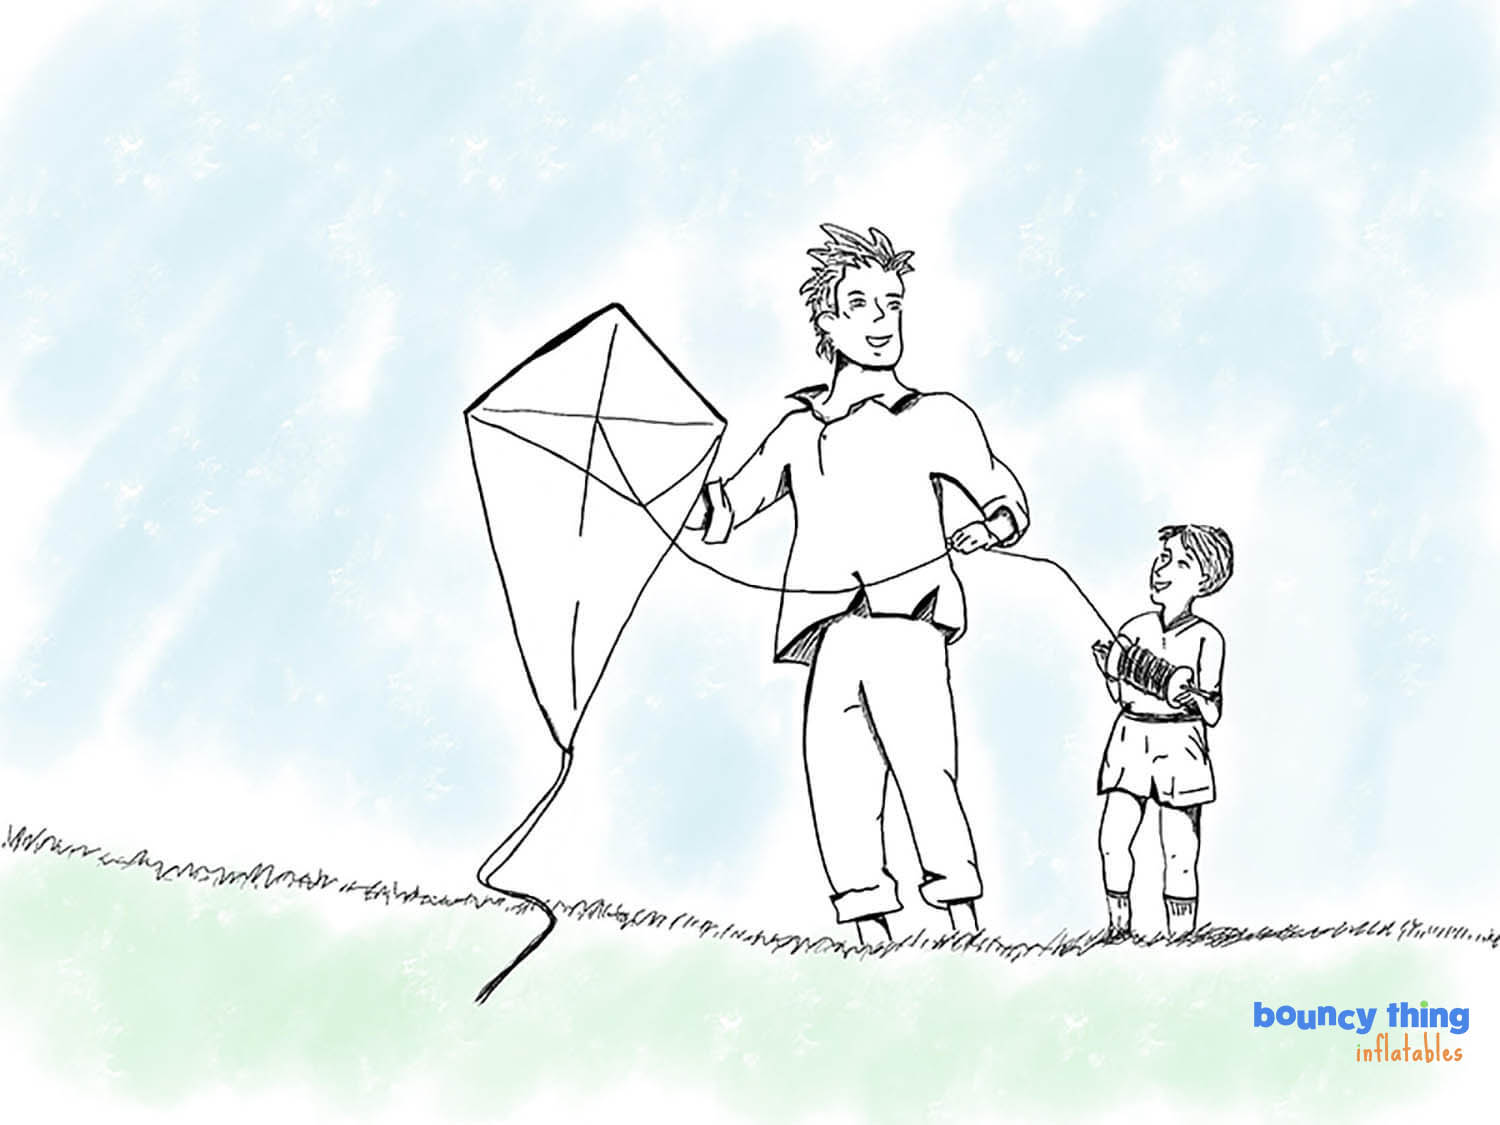 father and son flying kite